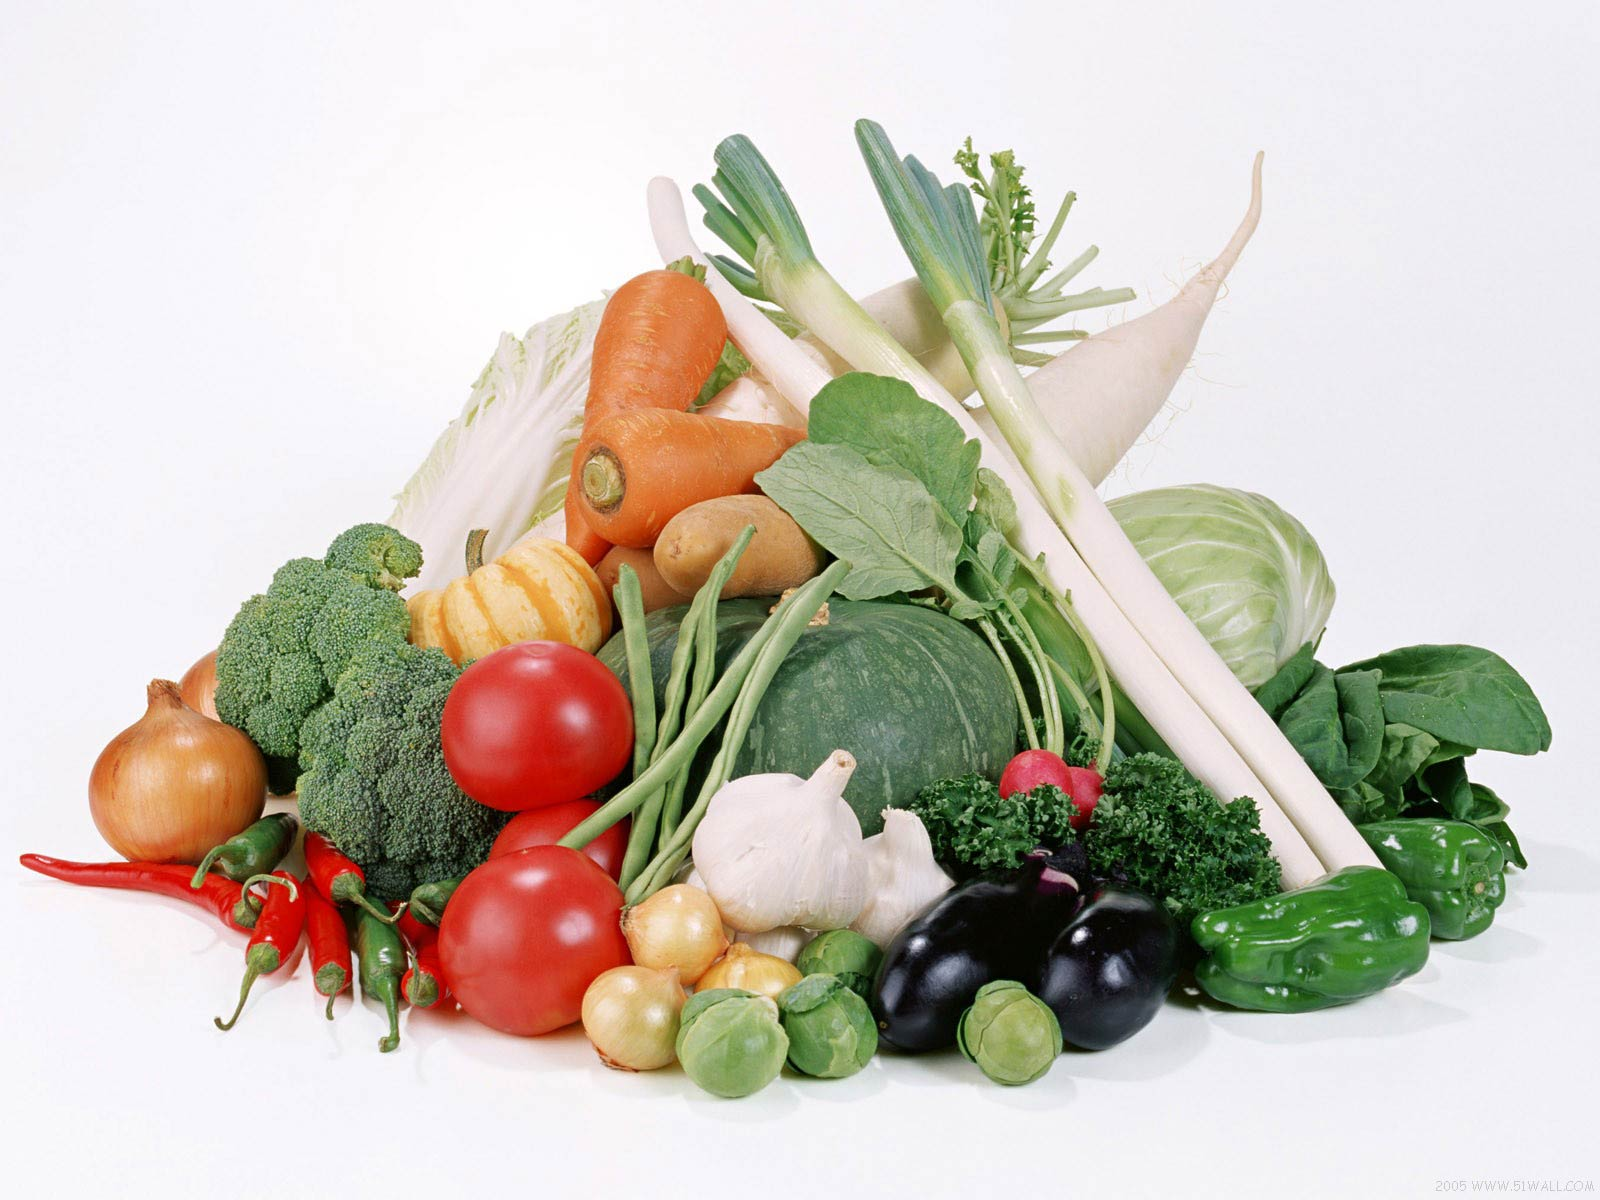 High Vegetable Prices Expected To Drop The Pulse Of